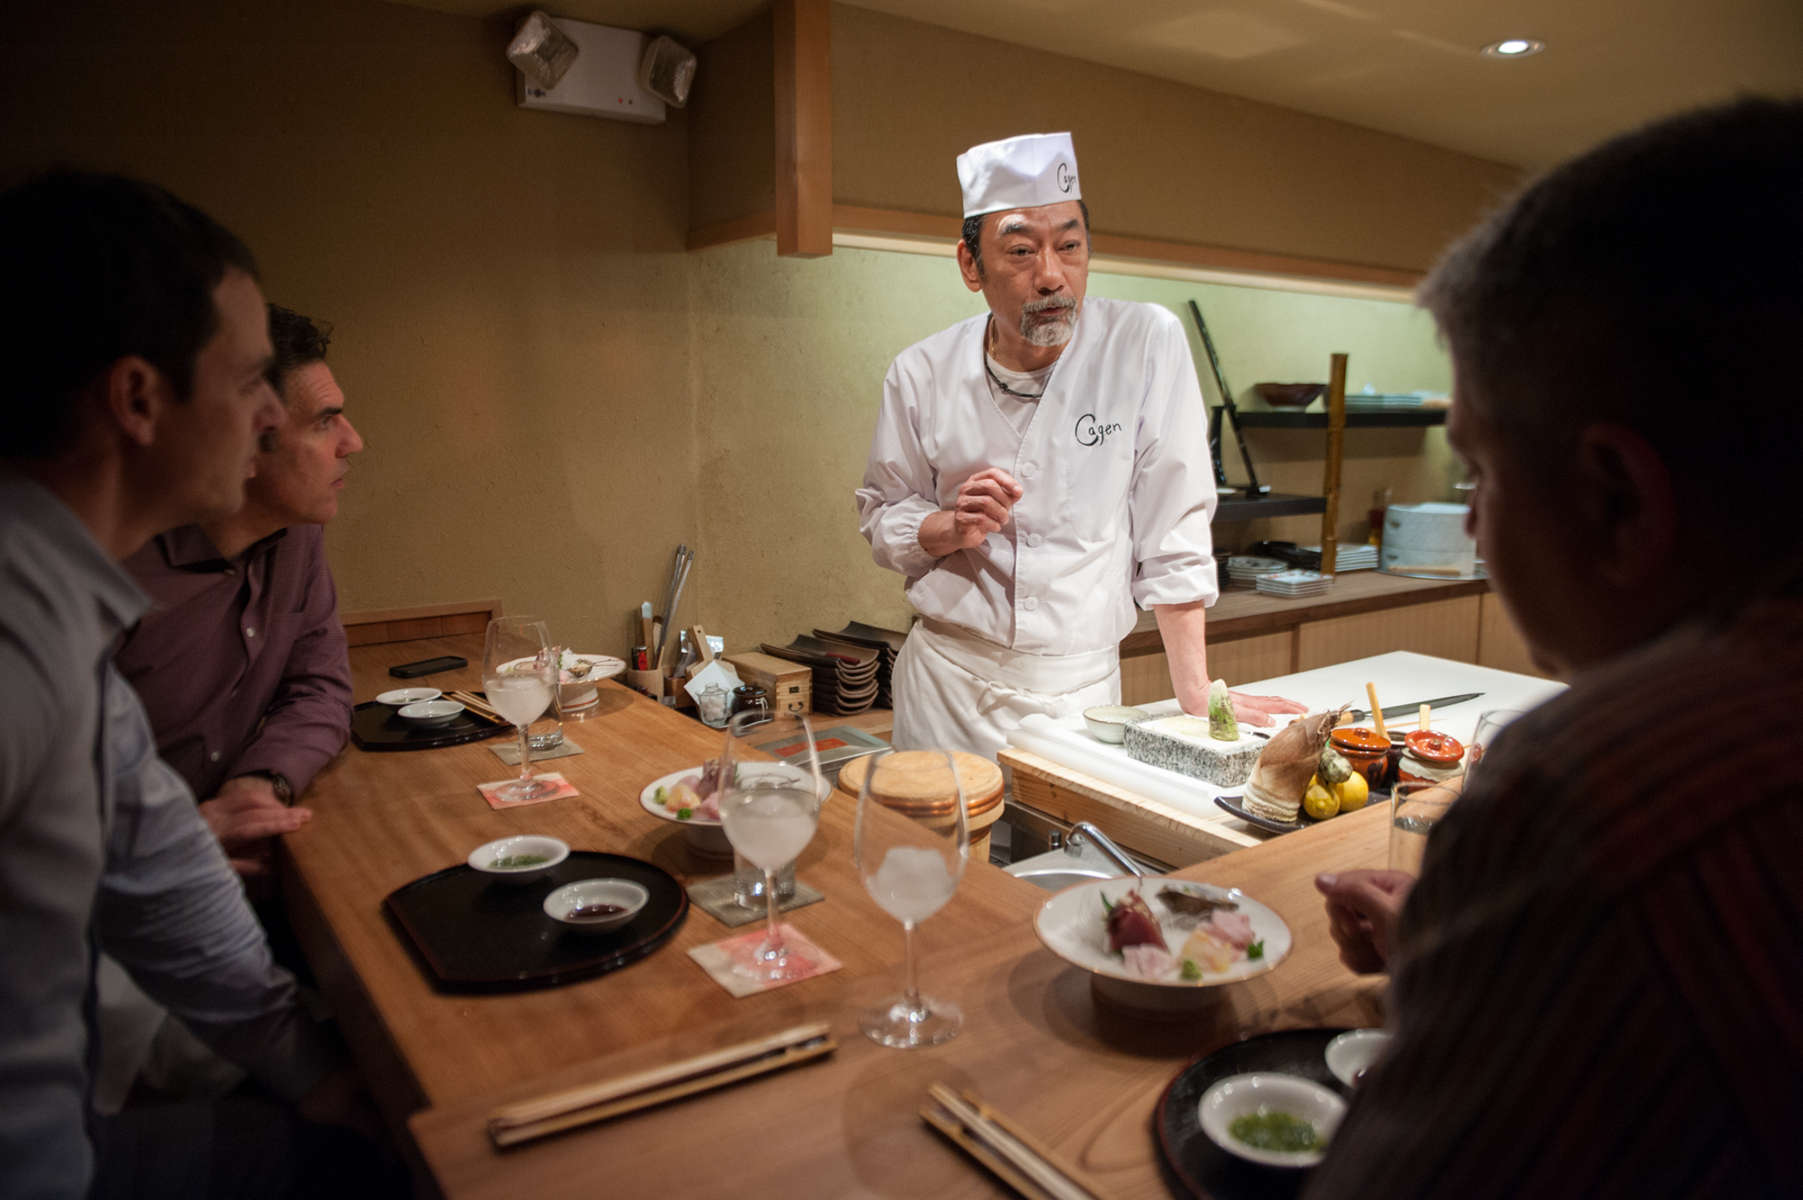 Chef Toshio Tomita presents diners with one of their many courses, offering up a collection of seafood items, such as Snapper, Grouper and baby Bluefish at this East Village establishment. (Apr. 23, 2014)Photo by Nancy Borowick